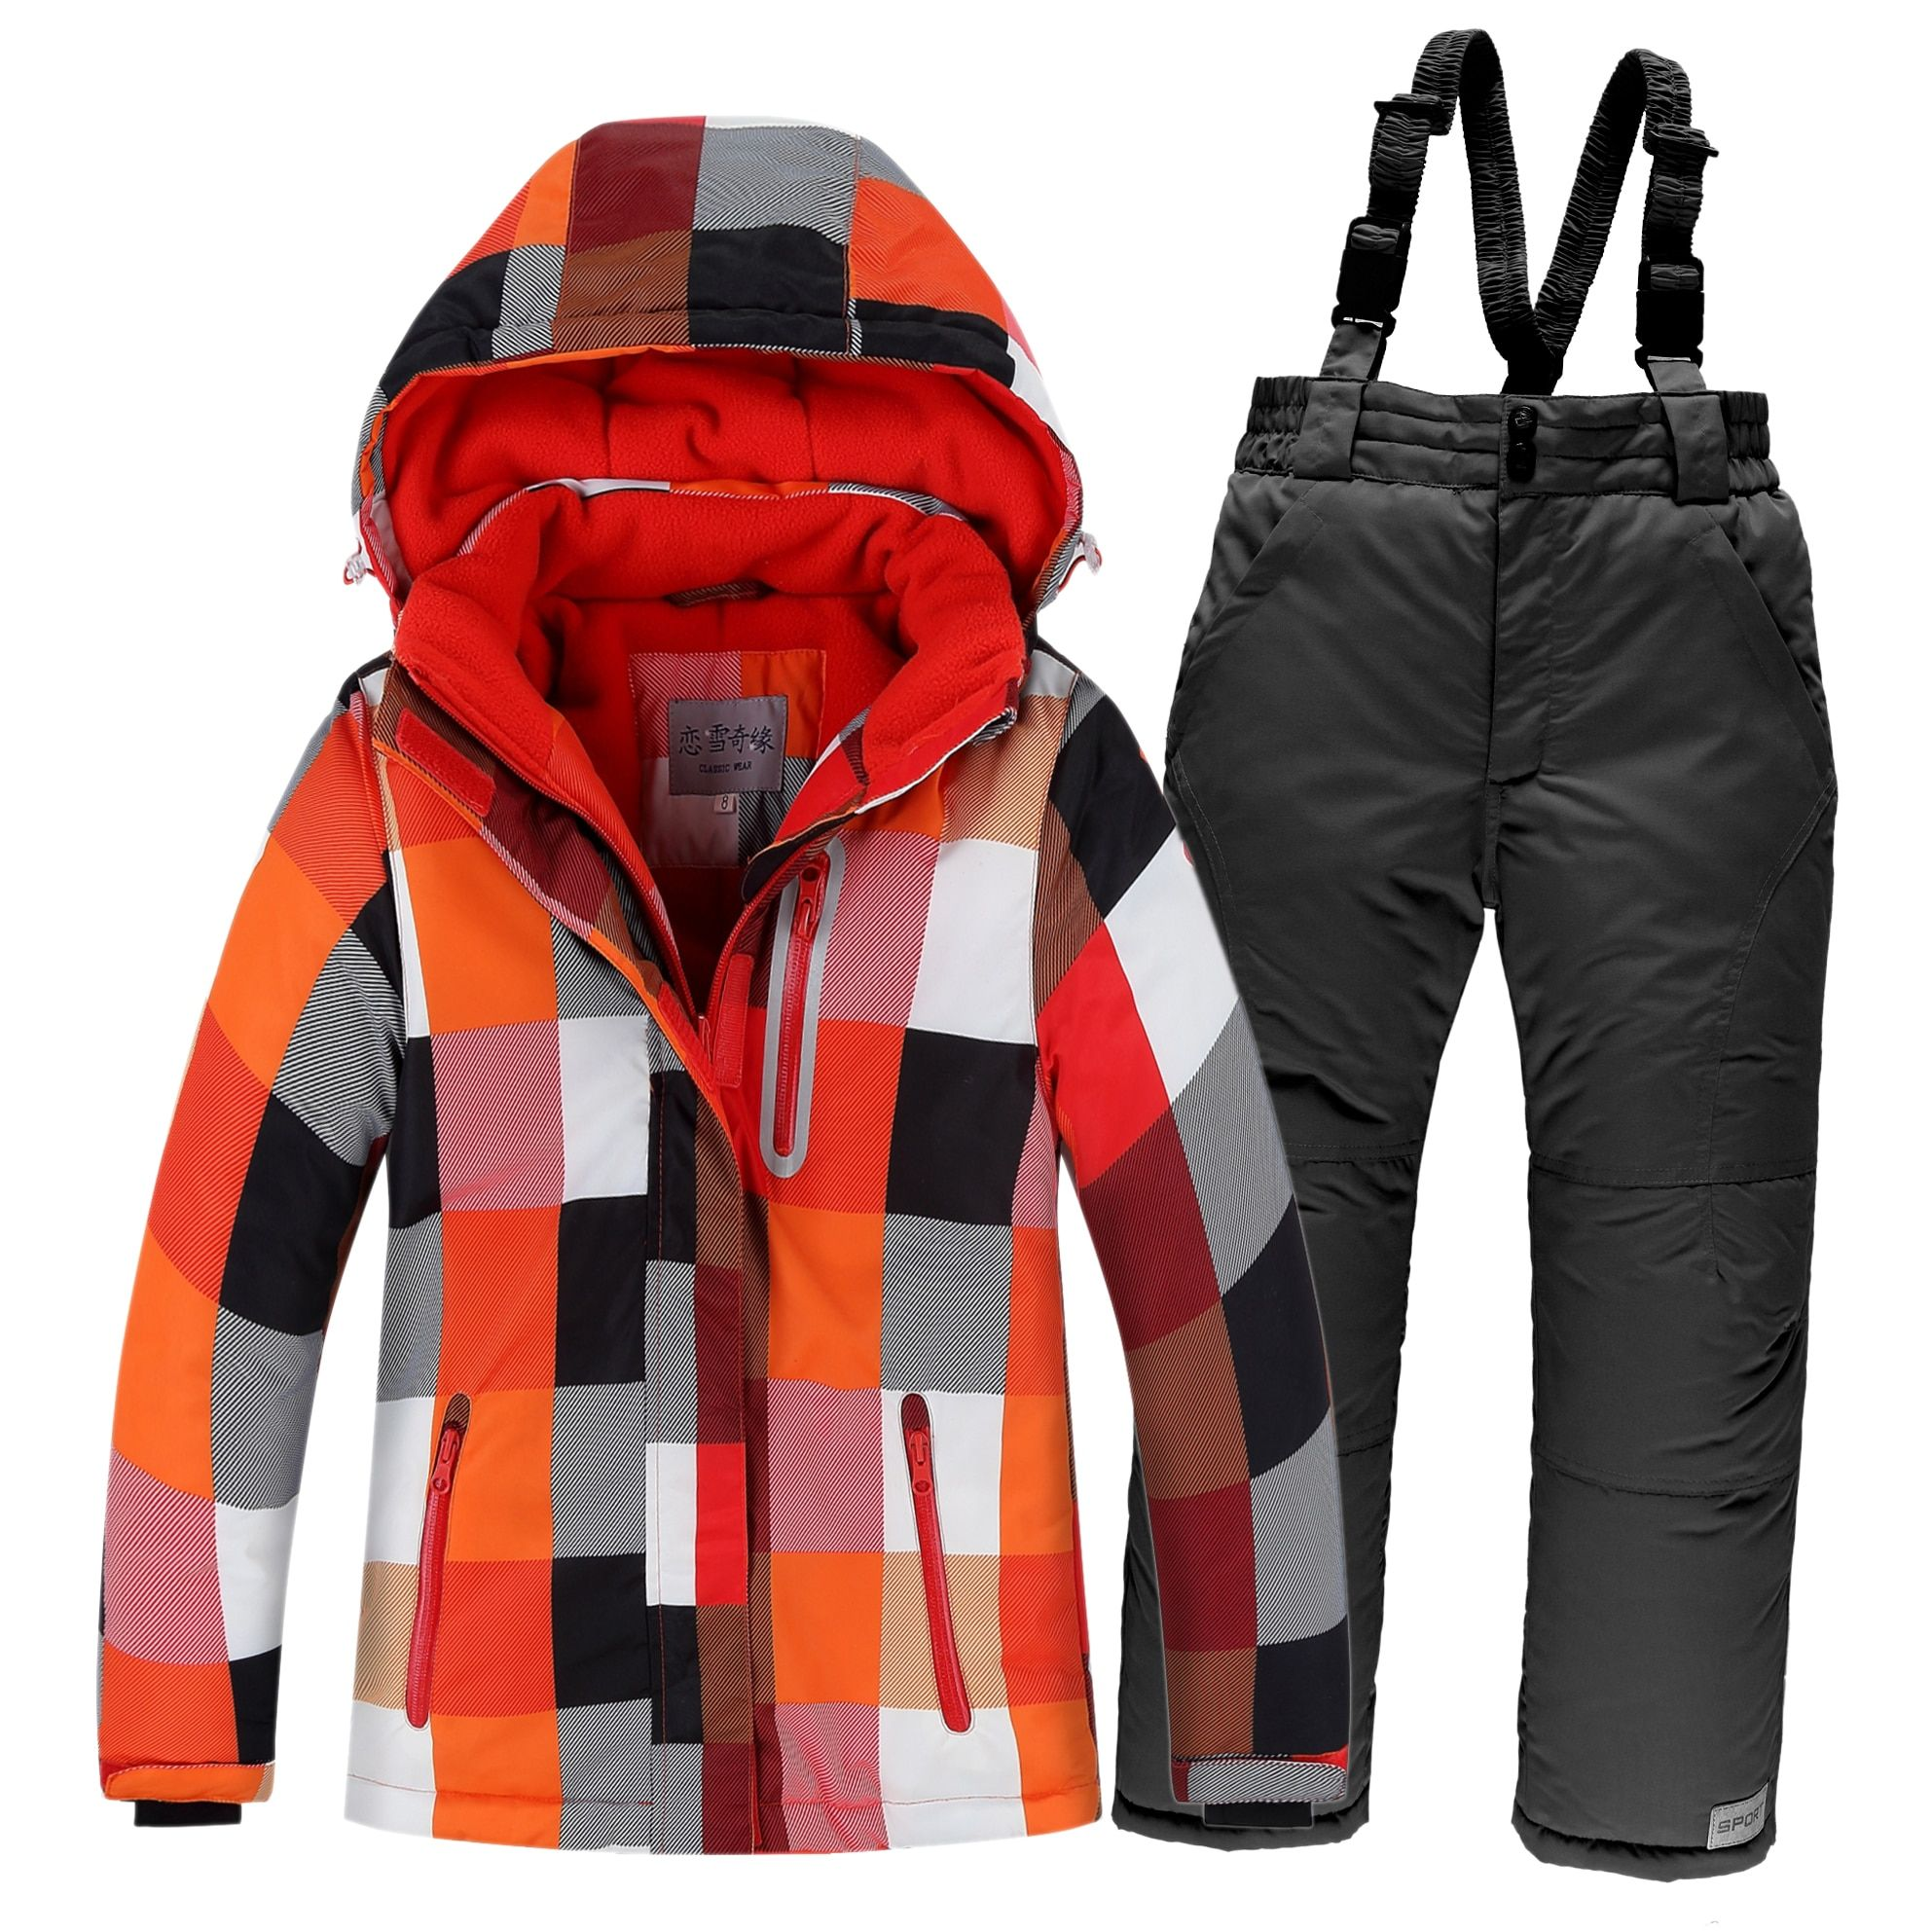 OLEKID Winter Children Ski Suit Windproof Warm <font><b>Girls</b></font> Clothing Set Jacket + Overalls Boys Clothes Set 3-16 Years Kids Snow Suits